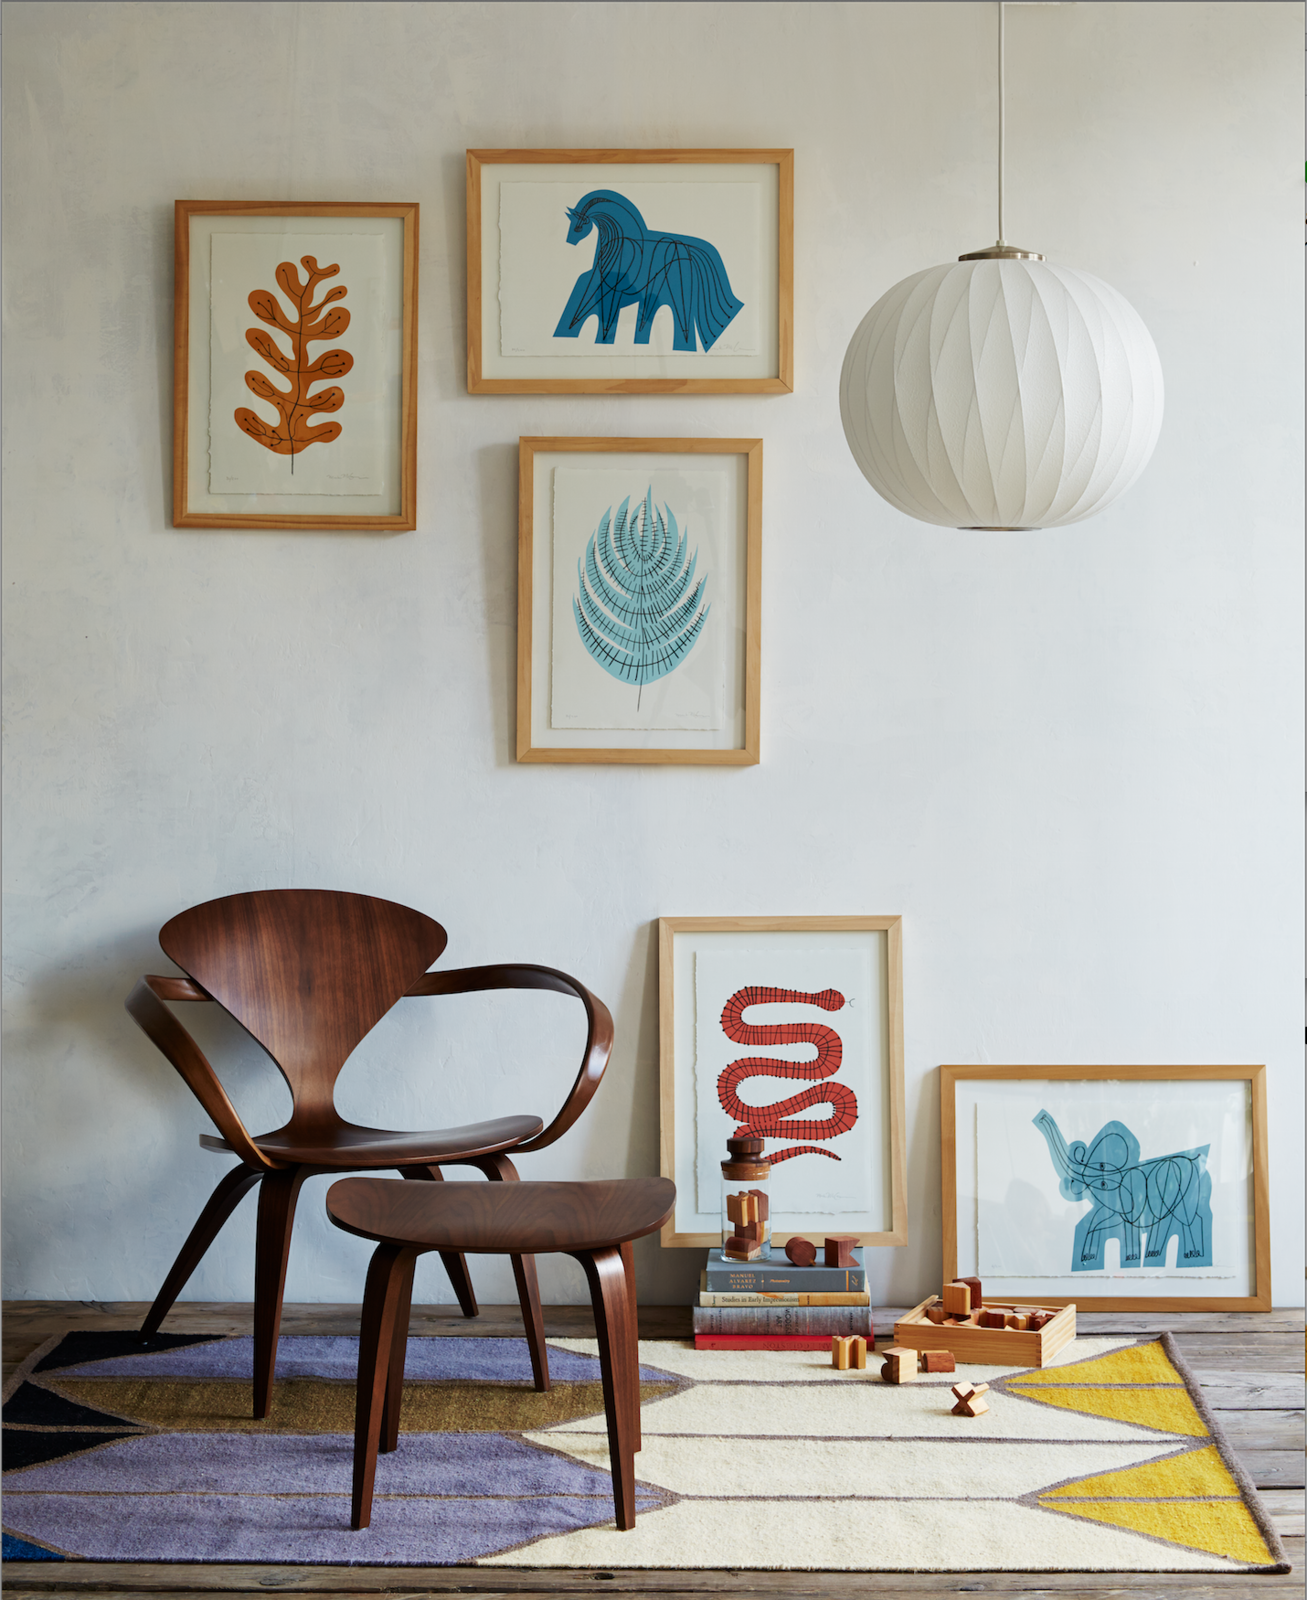 The Menagerie Collection is a series of prints that depict animals and flora in a range of soft, yet vibrant colors. Although compositionally simple, each print is comprised of several parts—the graphic is screen printed on 140 lb. arches watercolor paper, after which McGinnis fills the colored print with a hand-drawn line sketch. From there, the 100 percent cotton paper is mounted and framed in an ash wood frame.   Shown: Yellow Leaf, Blue Horse, Blue Fern, Red Snake, Blue Elephant.  Also pictured: Cherner Lounge Arm Chair, Nelson Bubble Lamp Criss Cross Ball Pendant, and Shapes Rug.  Stuff I like